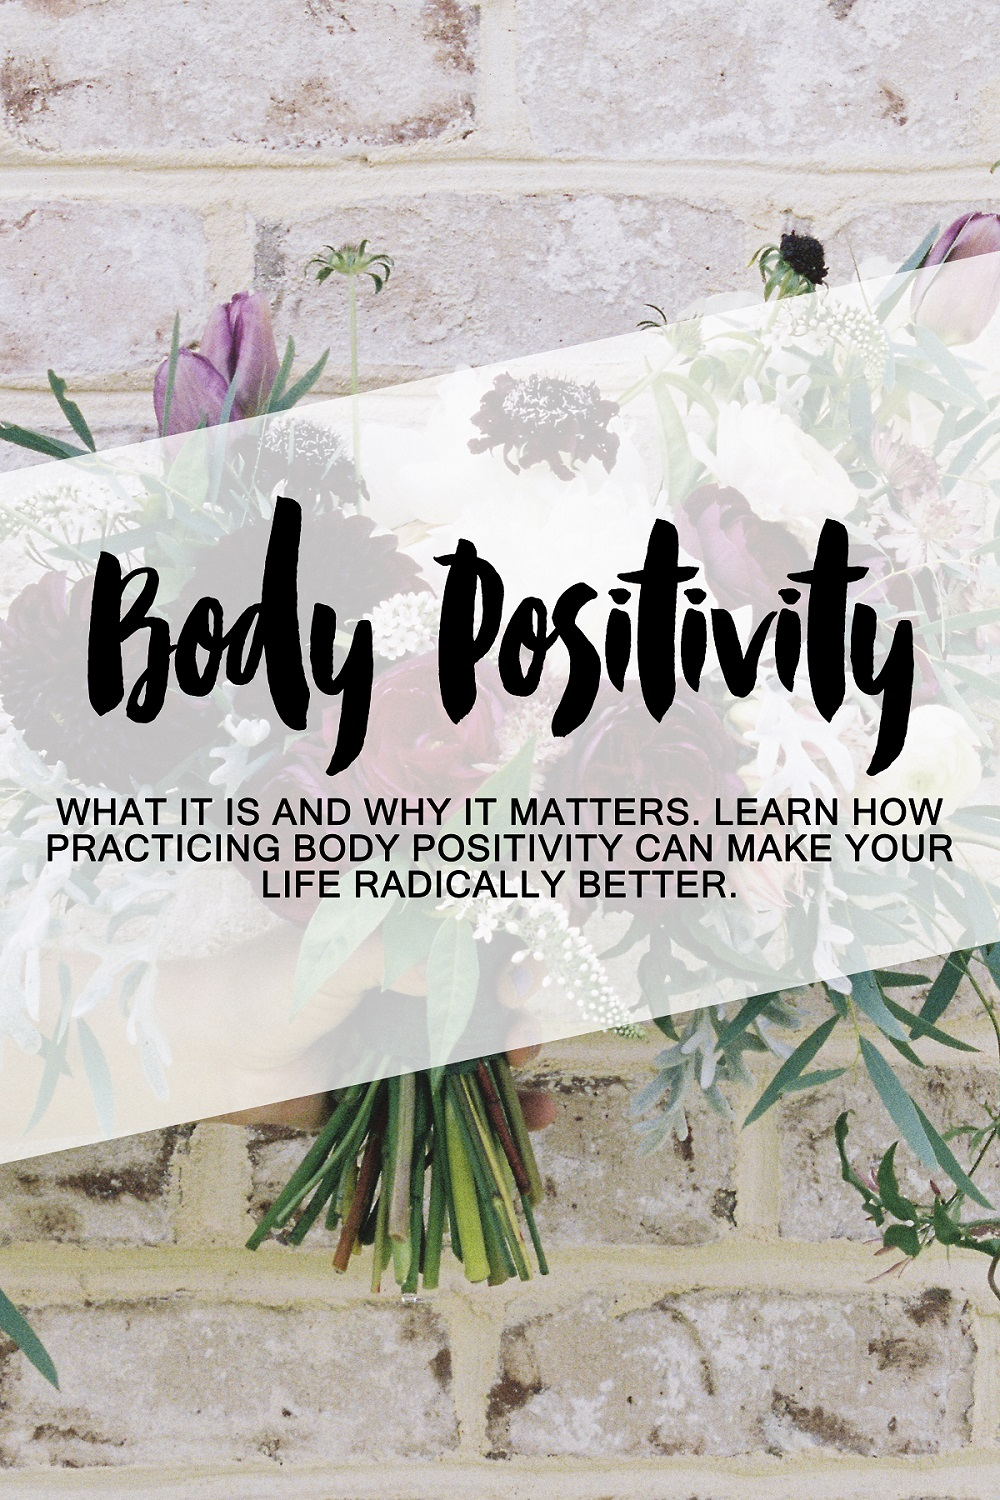 Body Positivity and How it can change your life (4).jpg